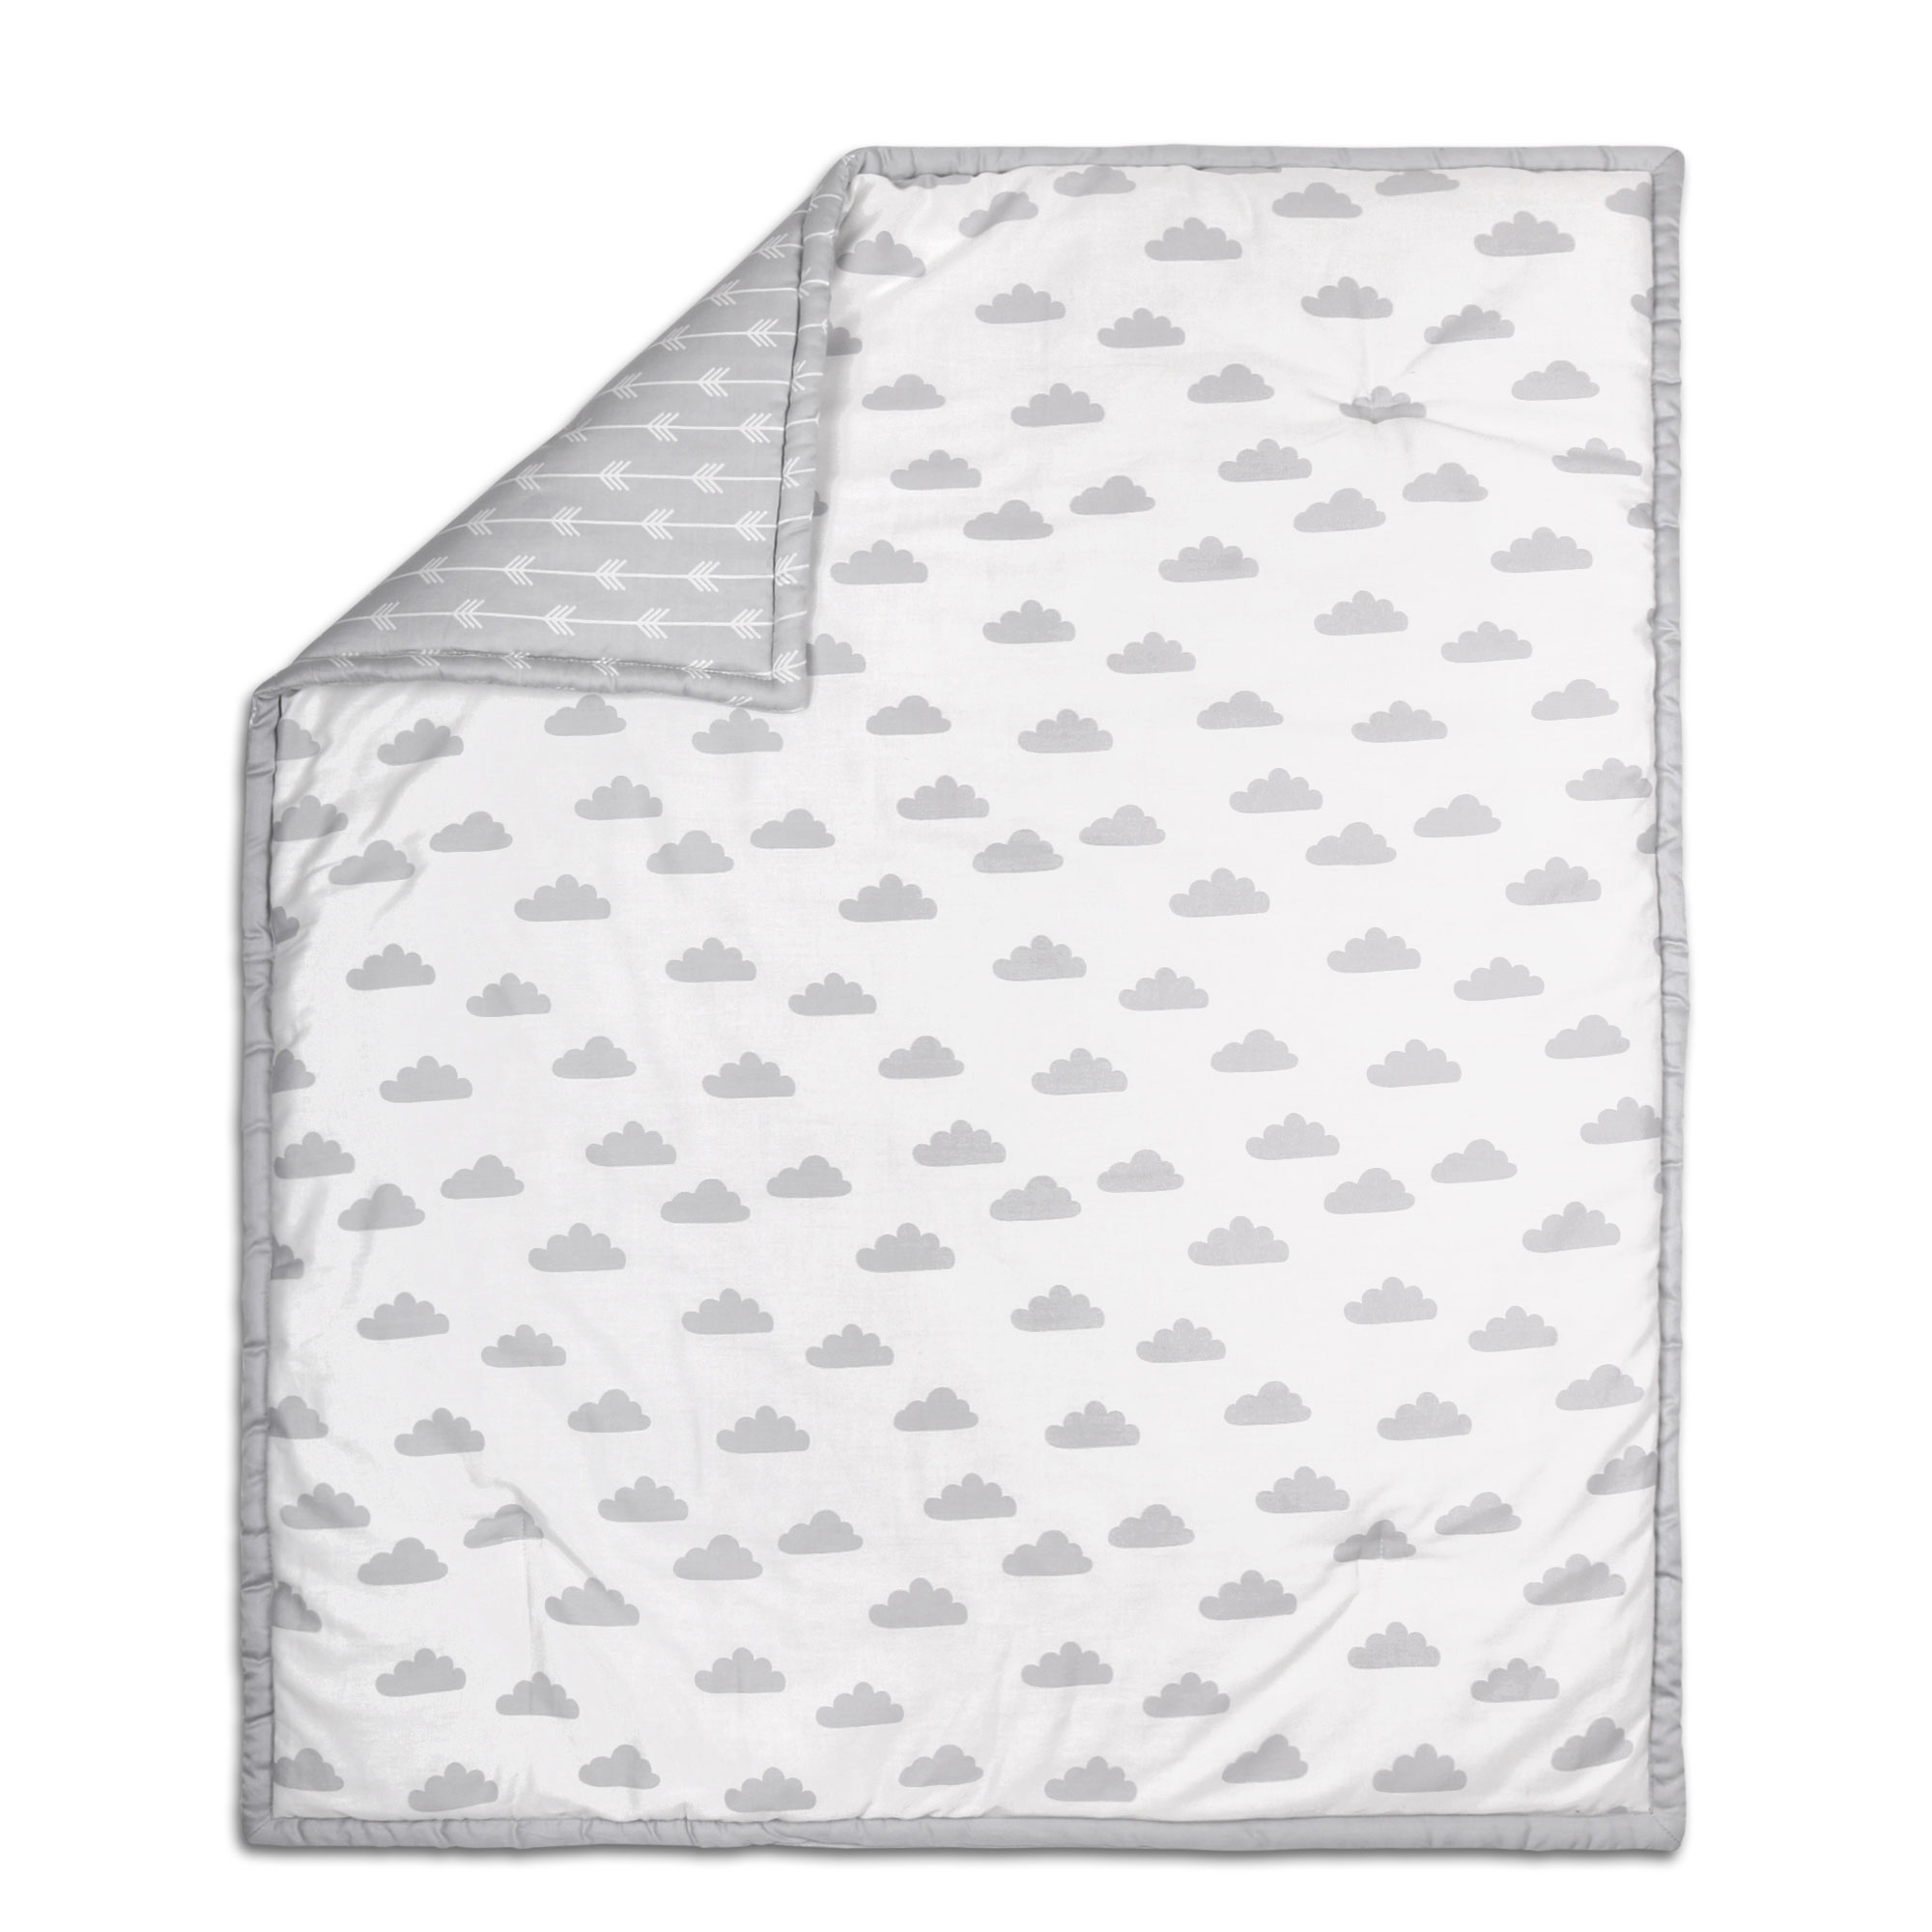 Peanut Shell Baby Crib Quilt - Grey on White Cloud and Ar...